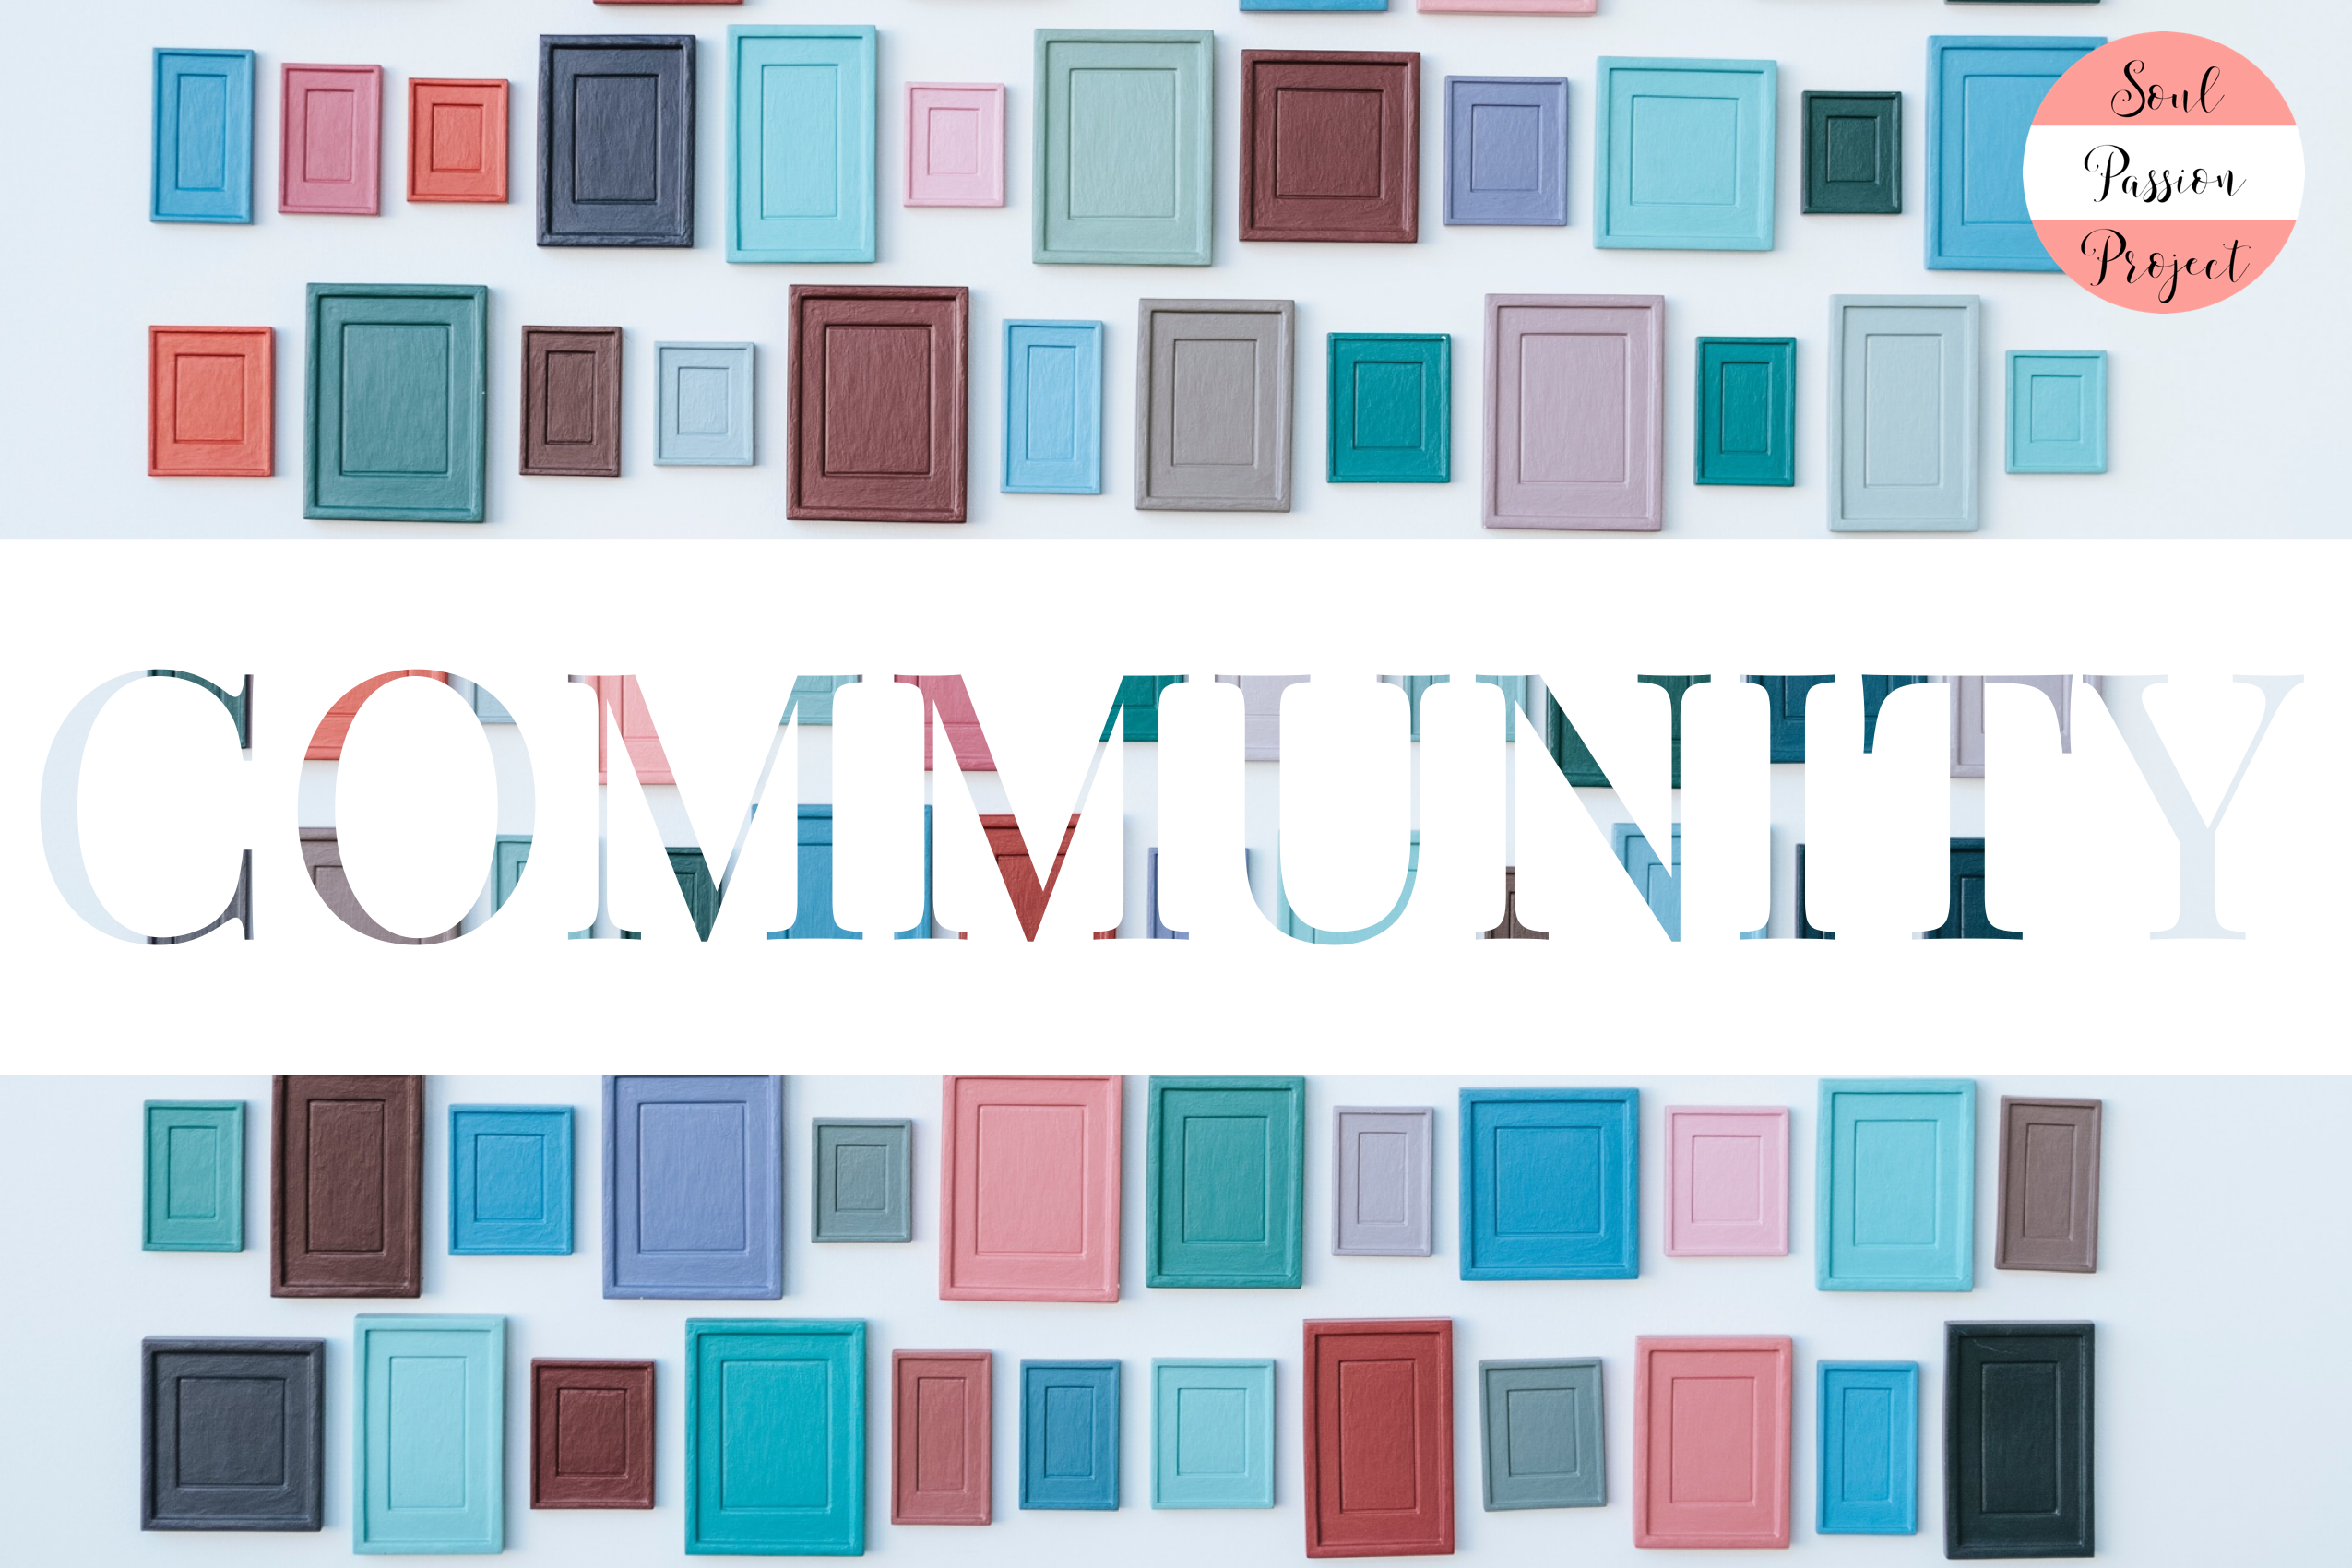 Image is a rectangle with a background of multicolored (mostly pinks, blues, and browns) cabinet doors with a white banner running through the middle with the word COMMUNITY in the multicolored pattern. The Soul Passion Project Logo is in the upper right corner of the image.